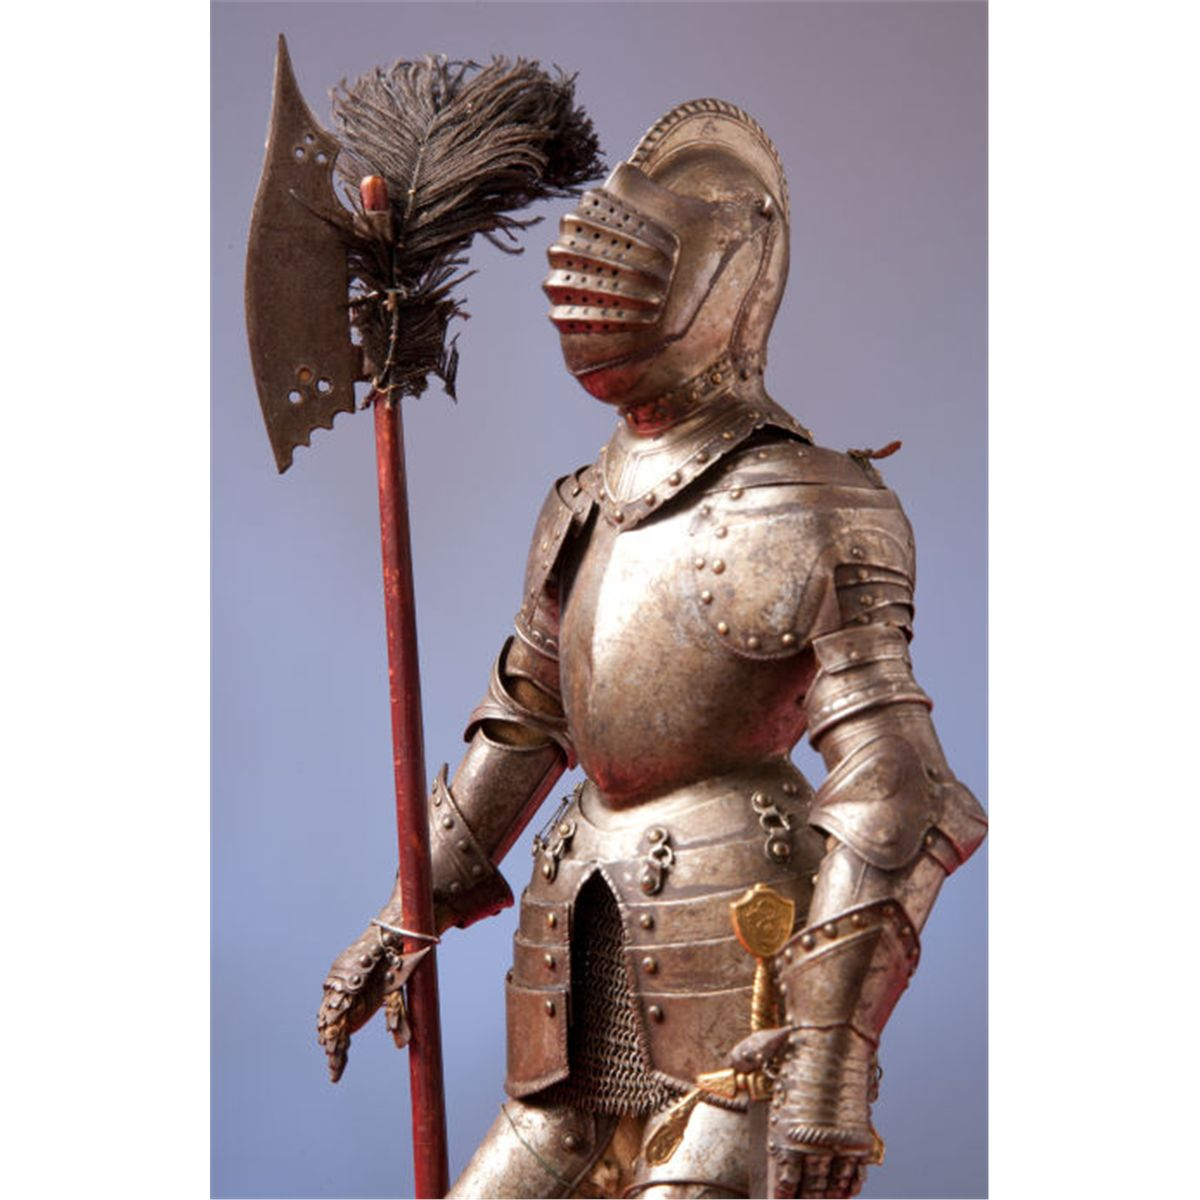 Fine Miniature Suit Of Armor In The 16th Century German Style By Edward Granger Paris Total 1